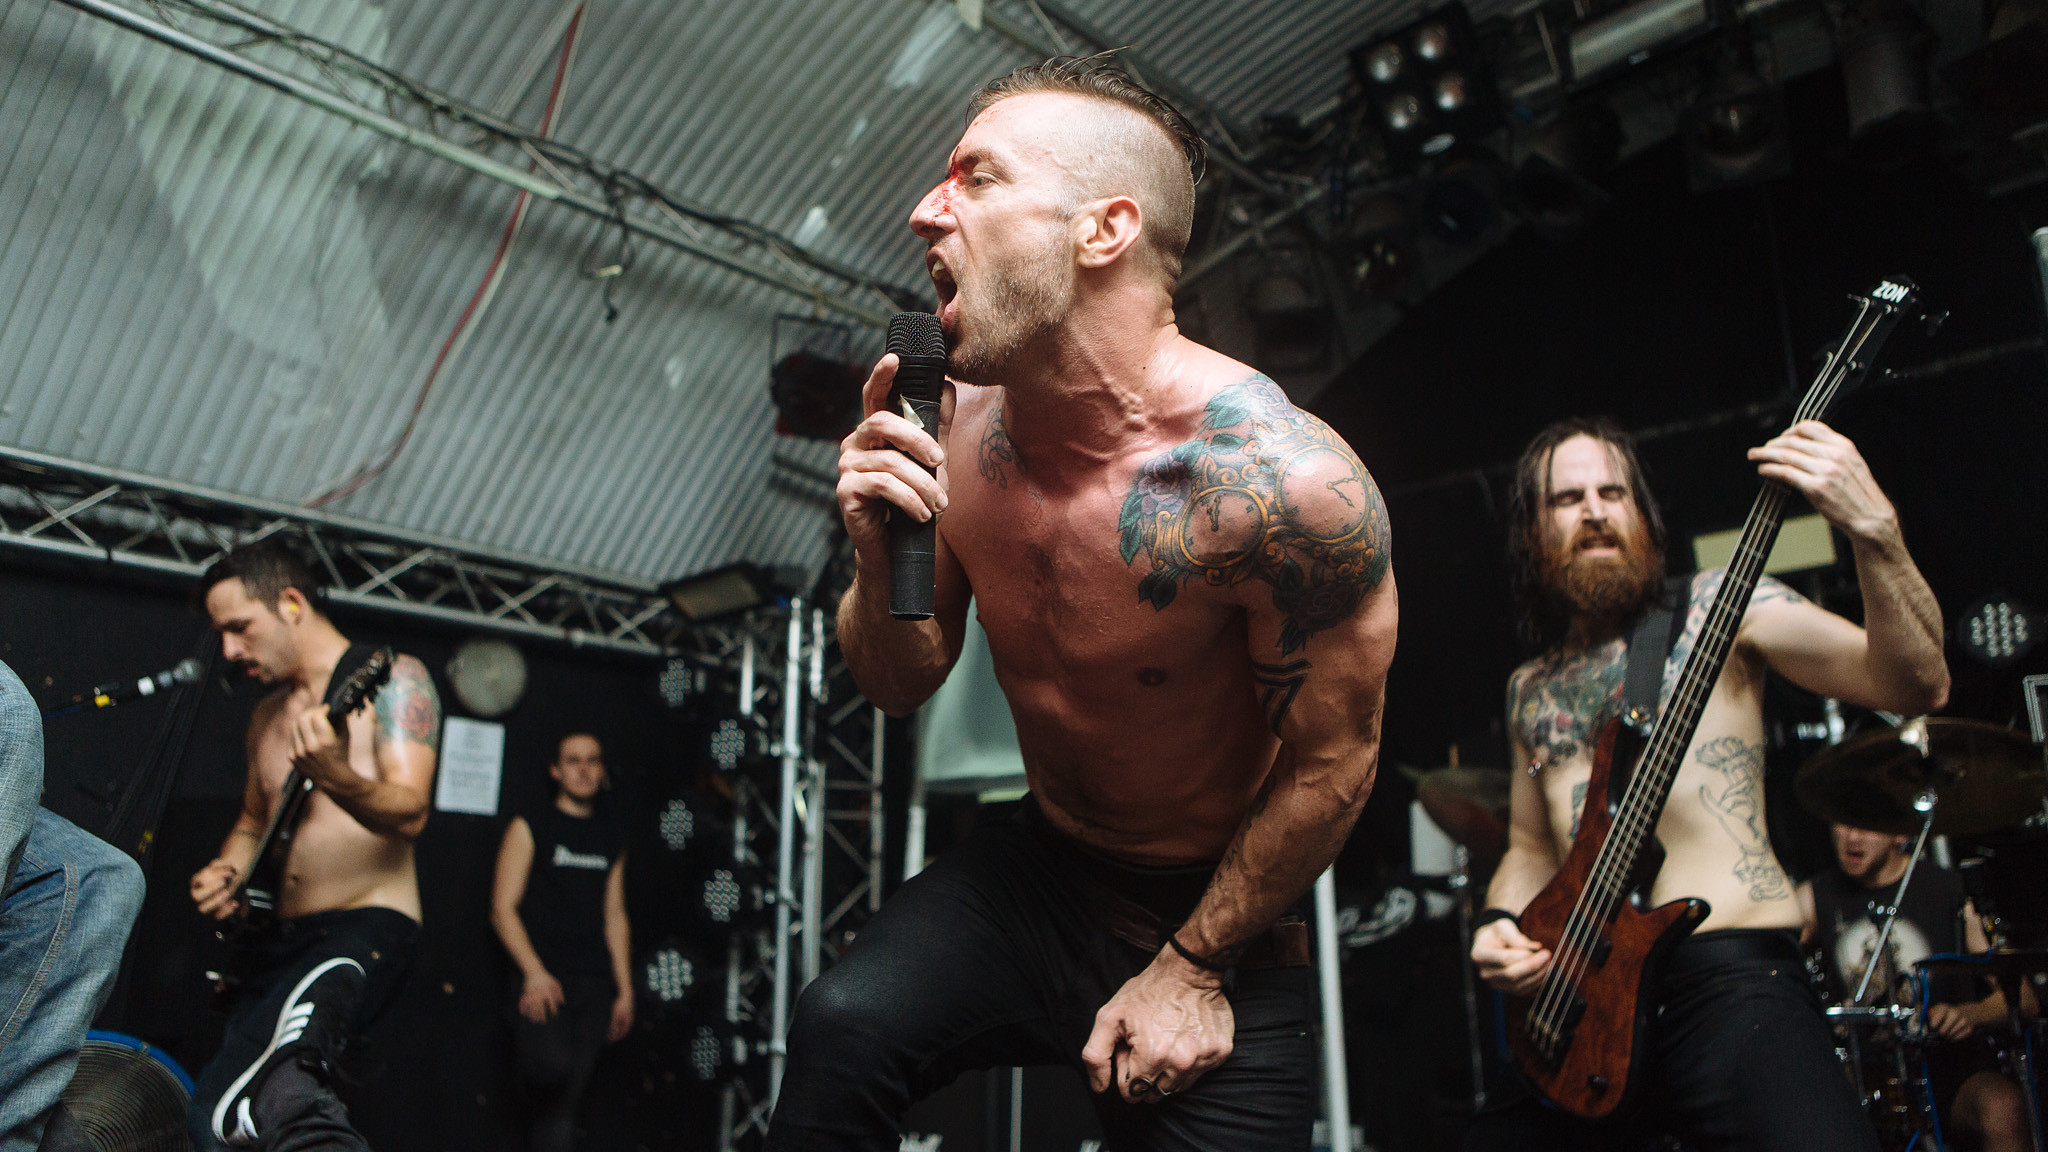 the_dillinger_escape_plan27_website_image_wlvx_wuxga.jpg